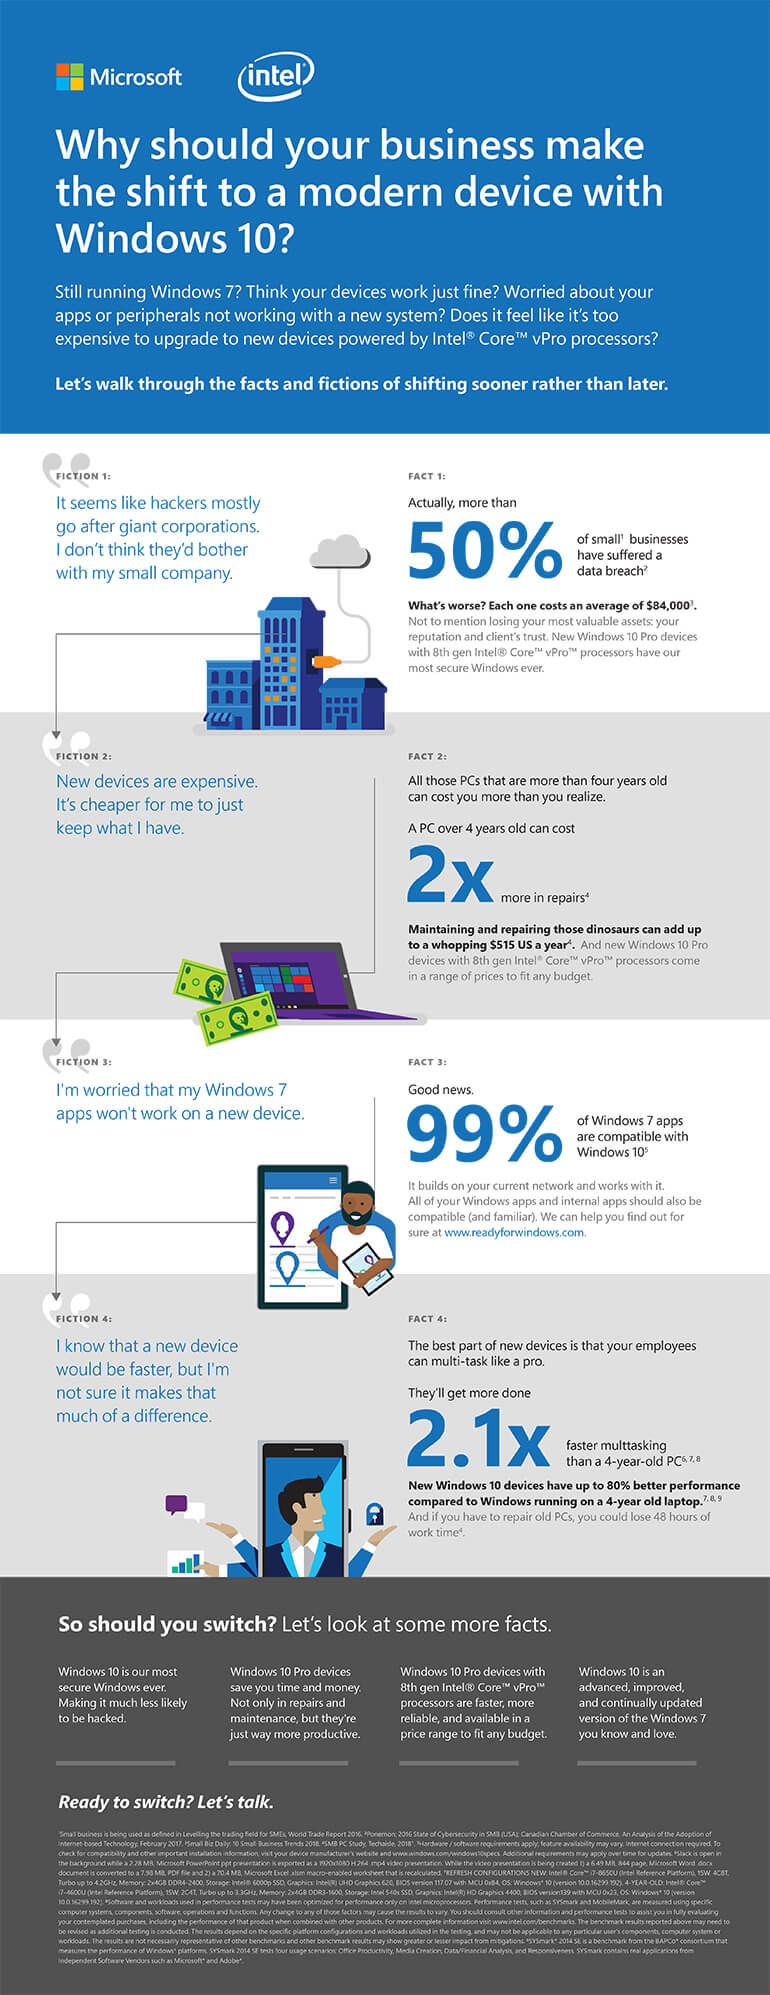 Infographic Why Should Your Business Make the Shift to a Modern Device With Windows 10?